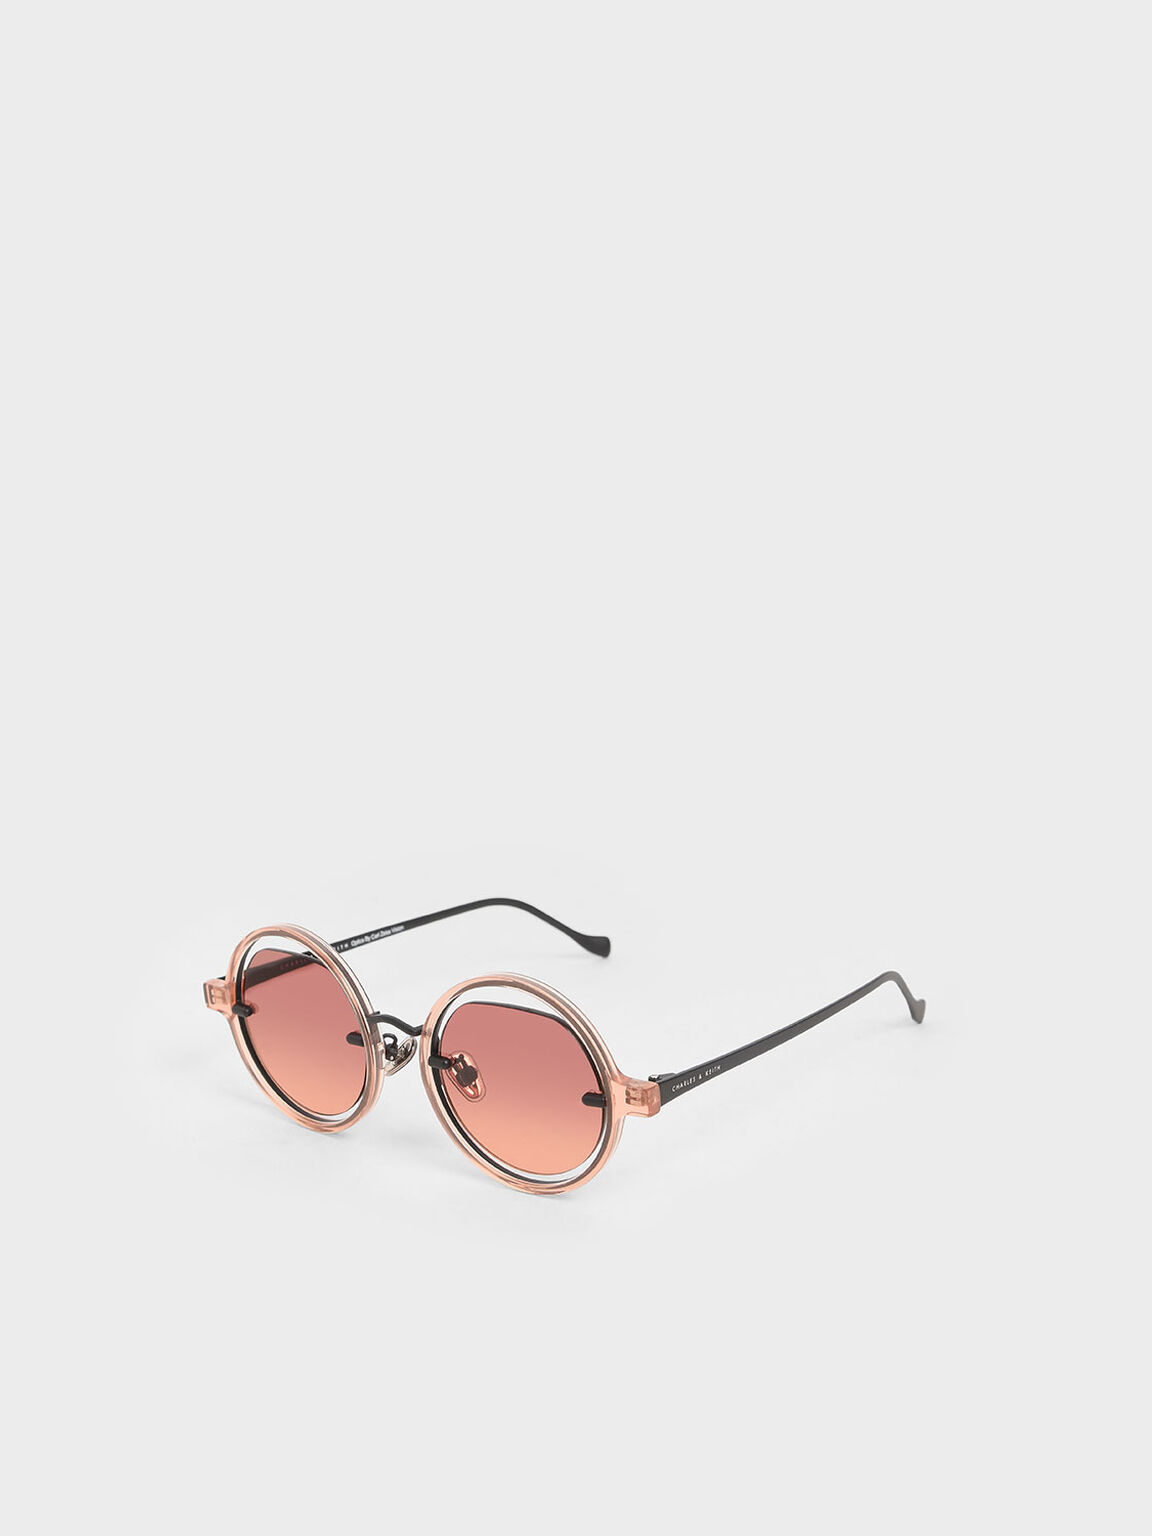 Cut-Out Round Sunglasses, Mauve, hi-res